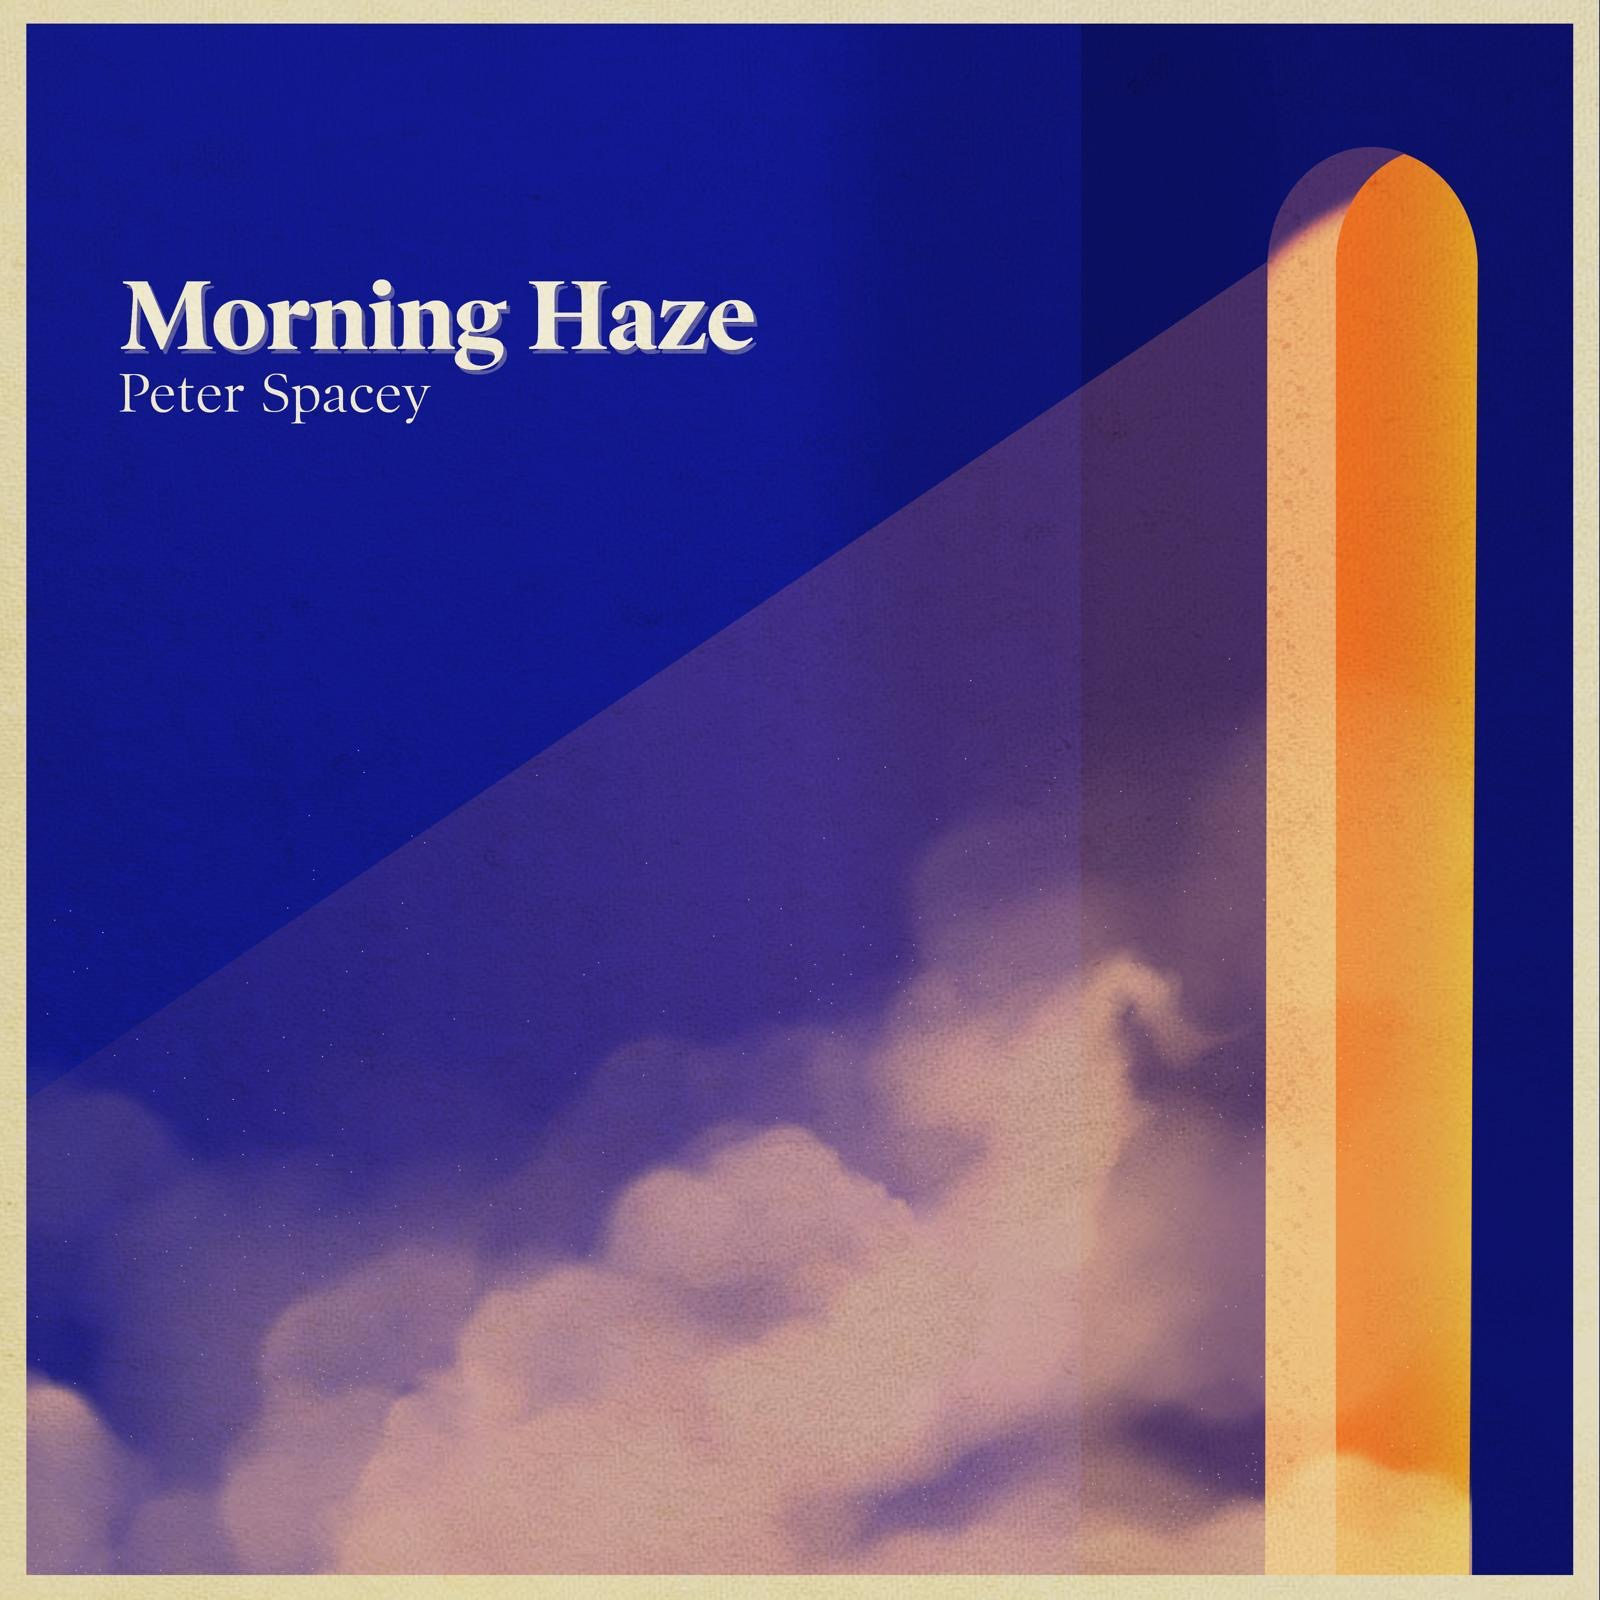 Morning Haze - Peter Spacey